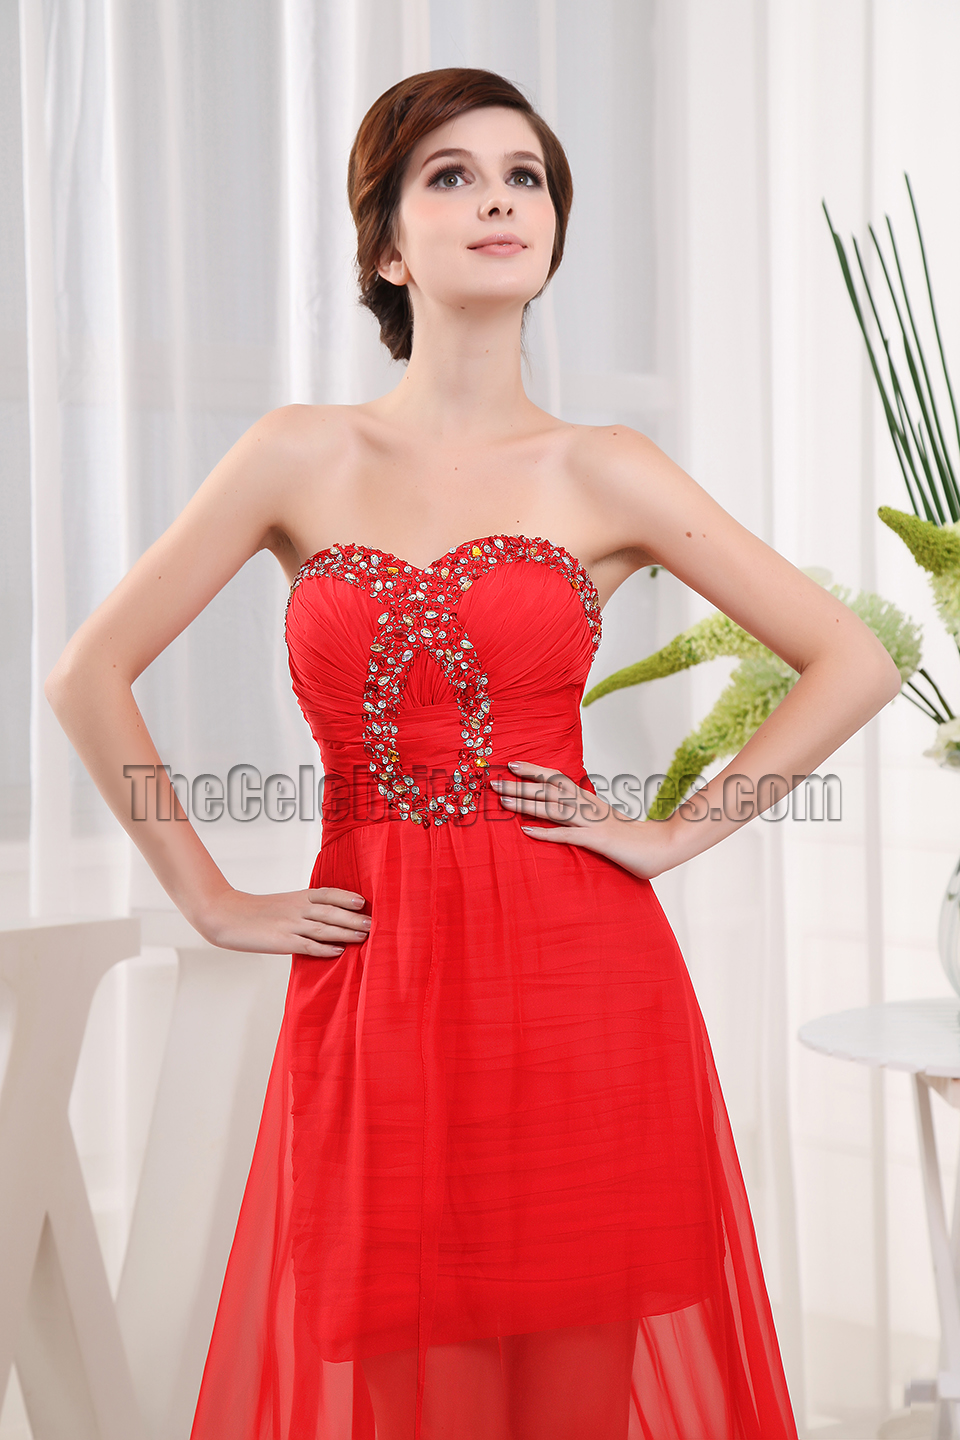 Red Strapless Beaded Prom Gown Evening Formal Dresses - TheCelebrityDresses